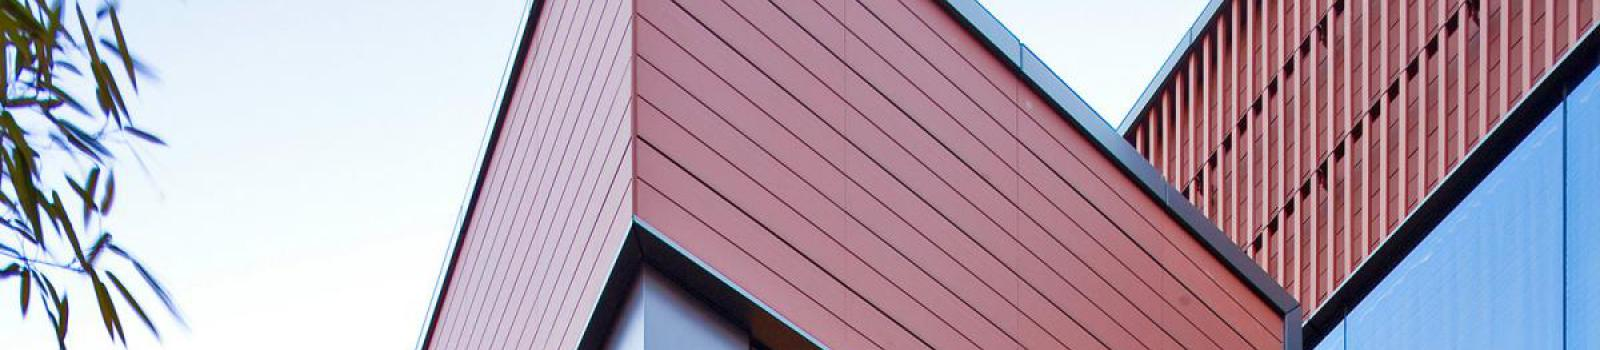 sustainable cladding facades